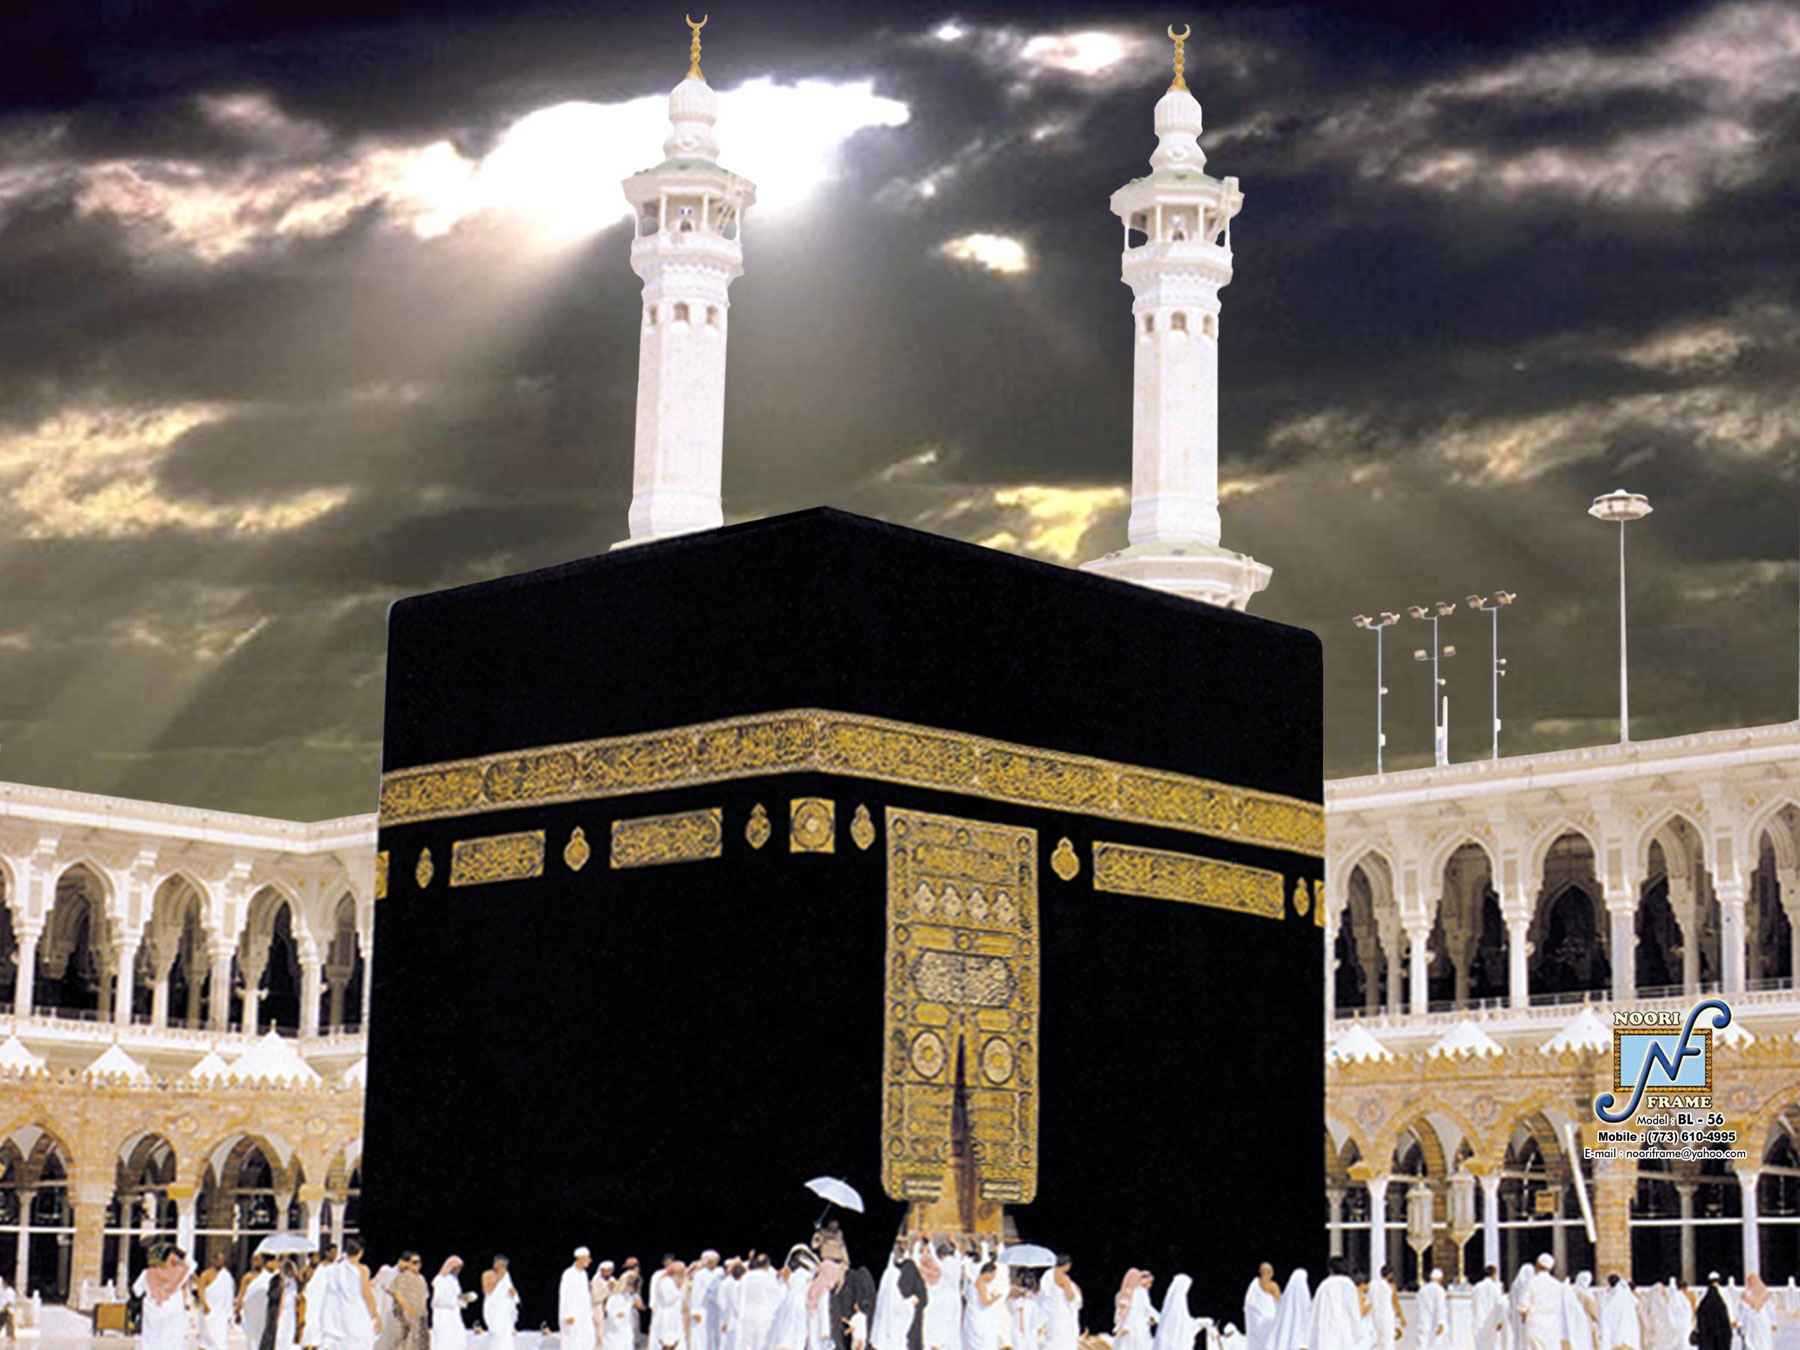 Hd Wallpaper Madina Kaba Shareef, Check Out Hd Wallpaper ...